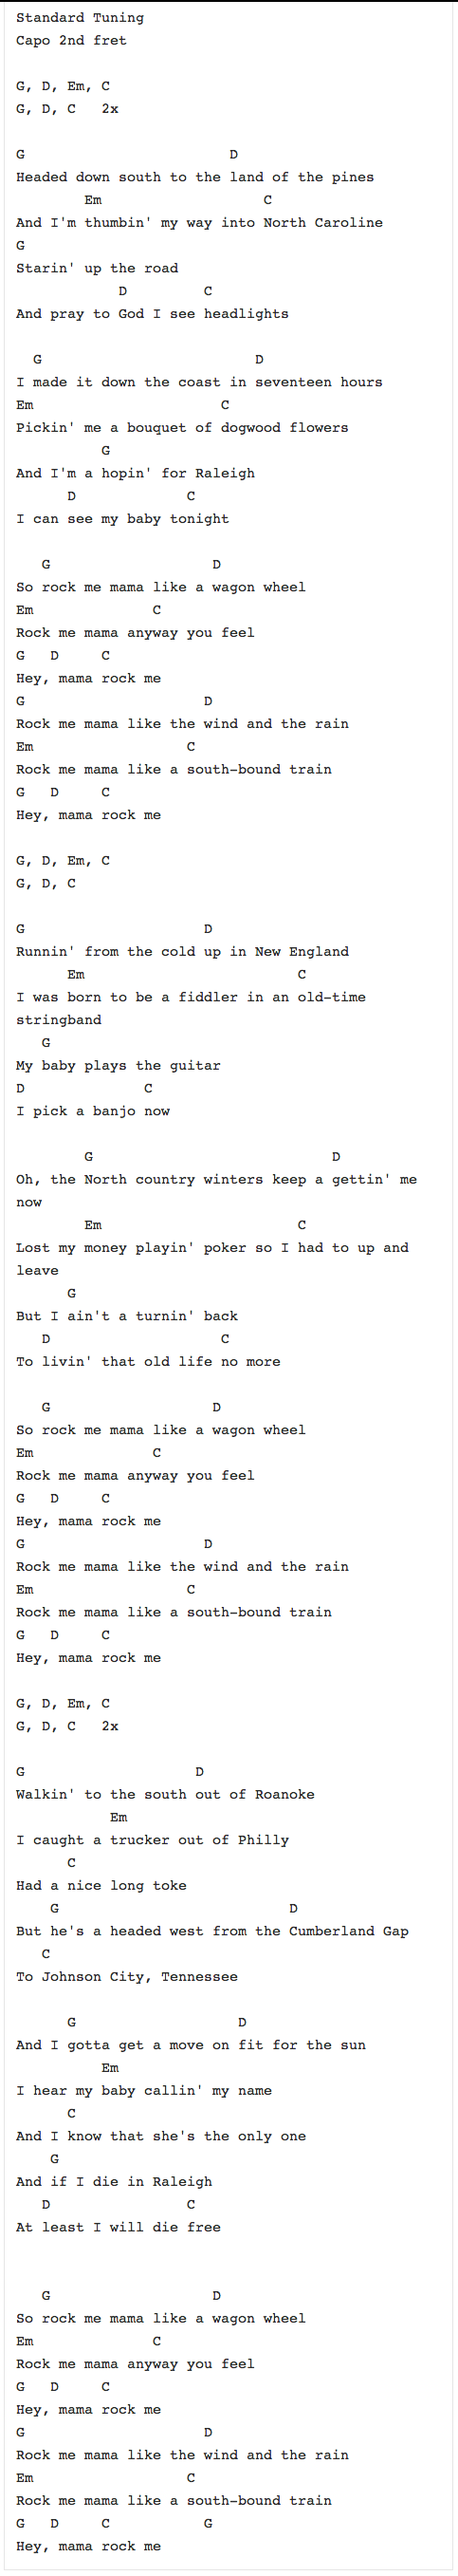 Wagon Wheel Chords Lyrics